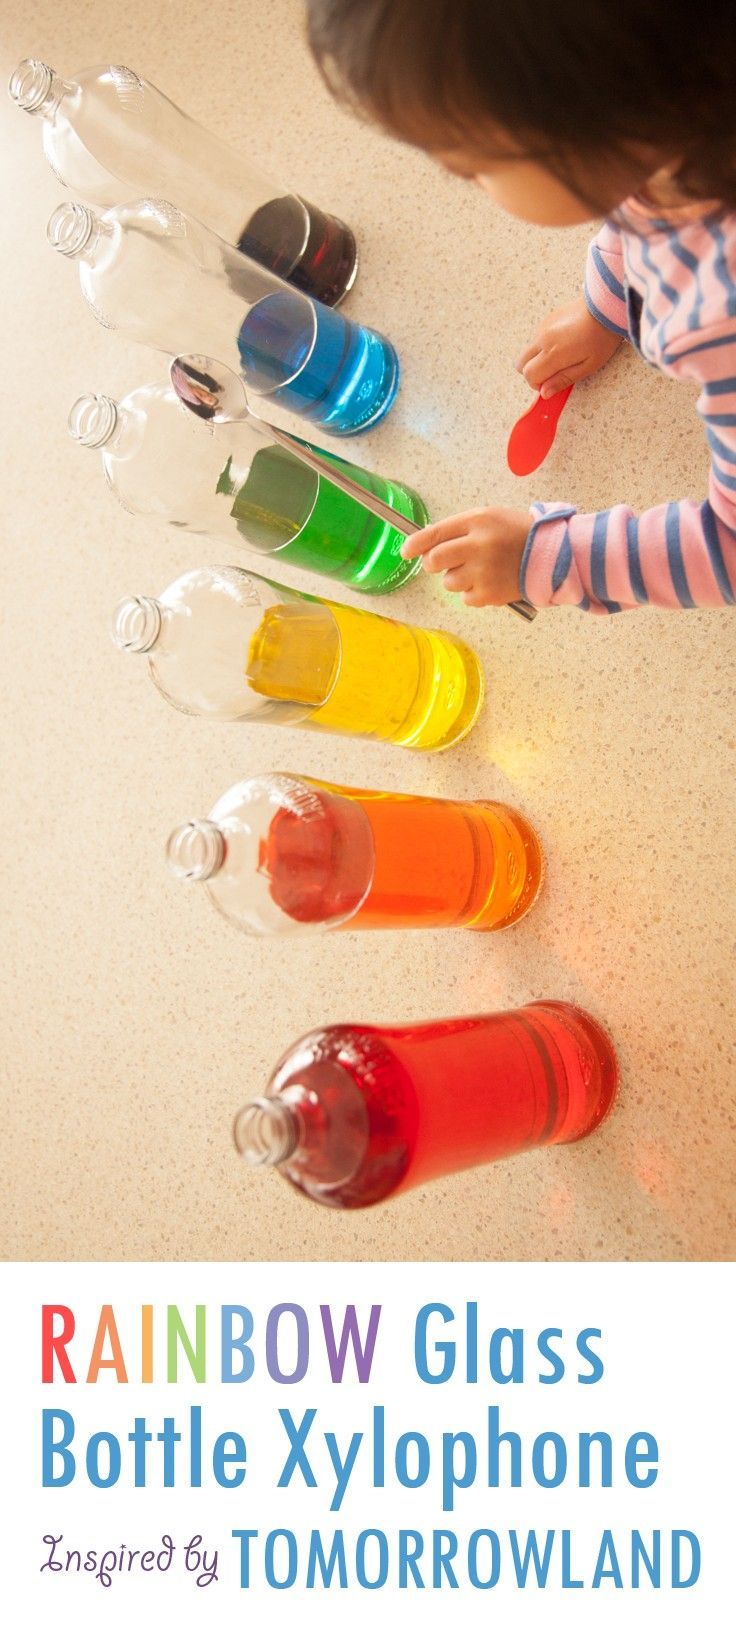 womens wedge sneakers australia Water  glass bottles  and food coloring   make a fun DIY Rainbow Xylophone  Just 5 minutes to make this beautiful musical instrument from recycled bottles to help your little dreamer learn to become a musician  Inspired by Disney  39 s Tomorrowland movie